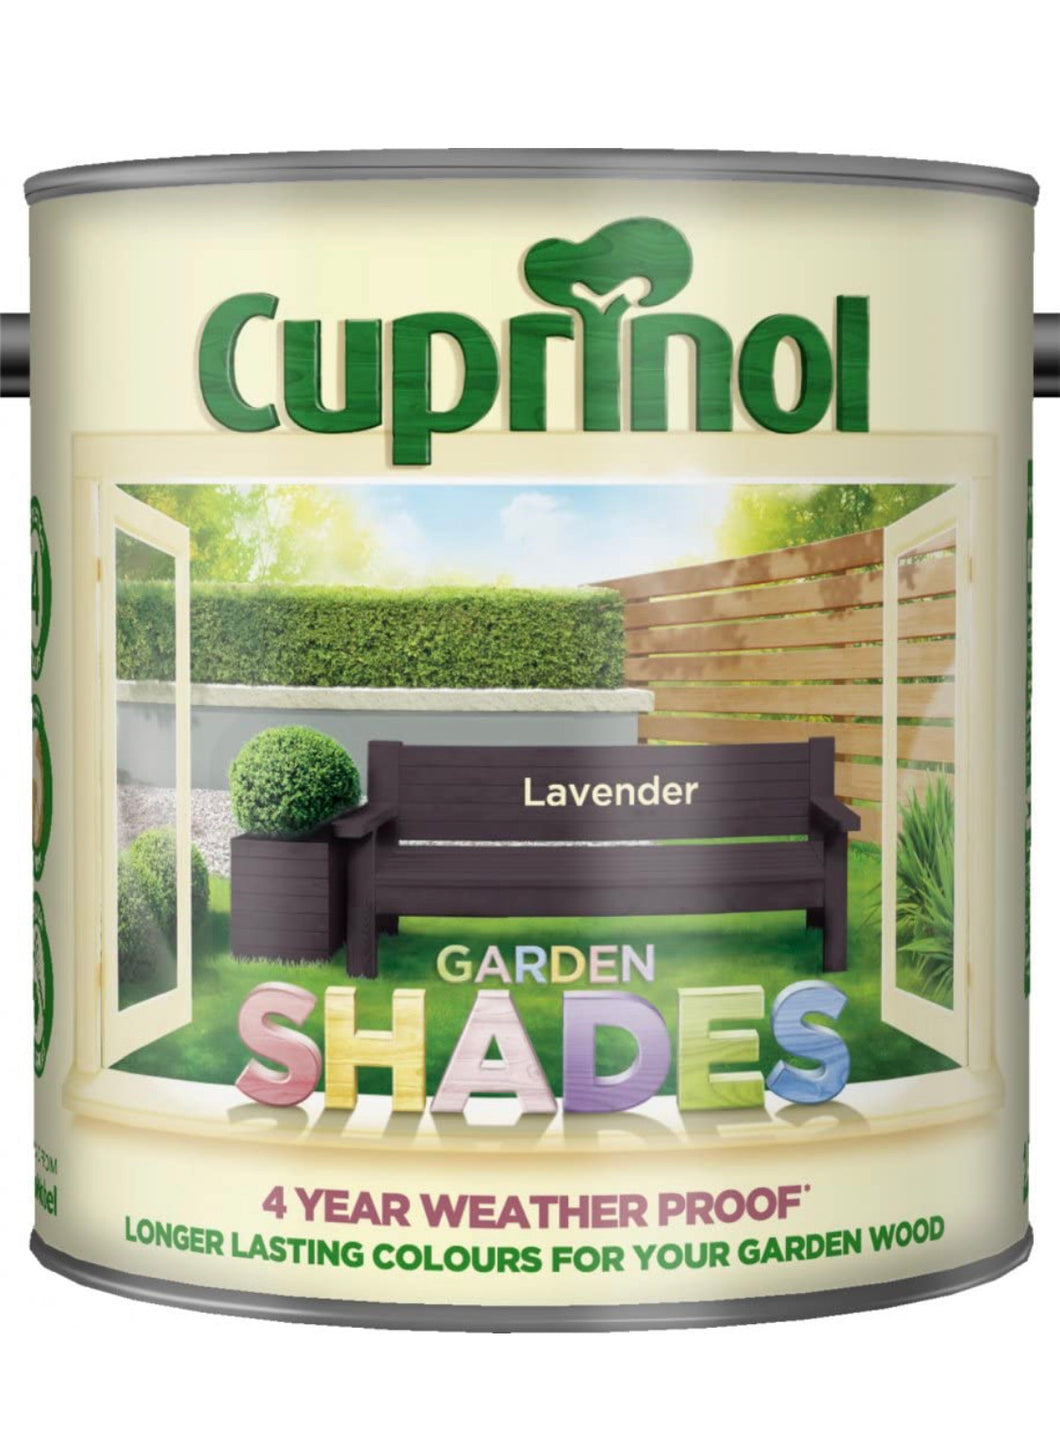 Cuprinol Garden Shades - 125ml - Lavender